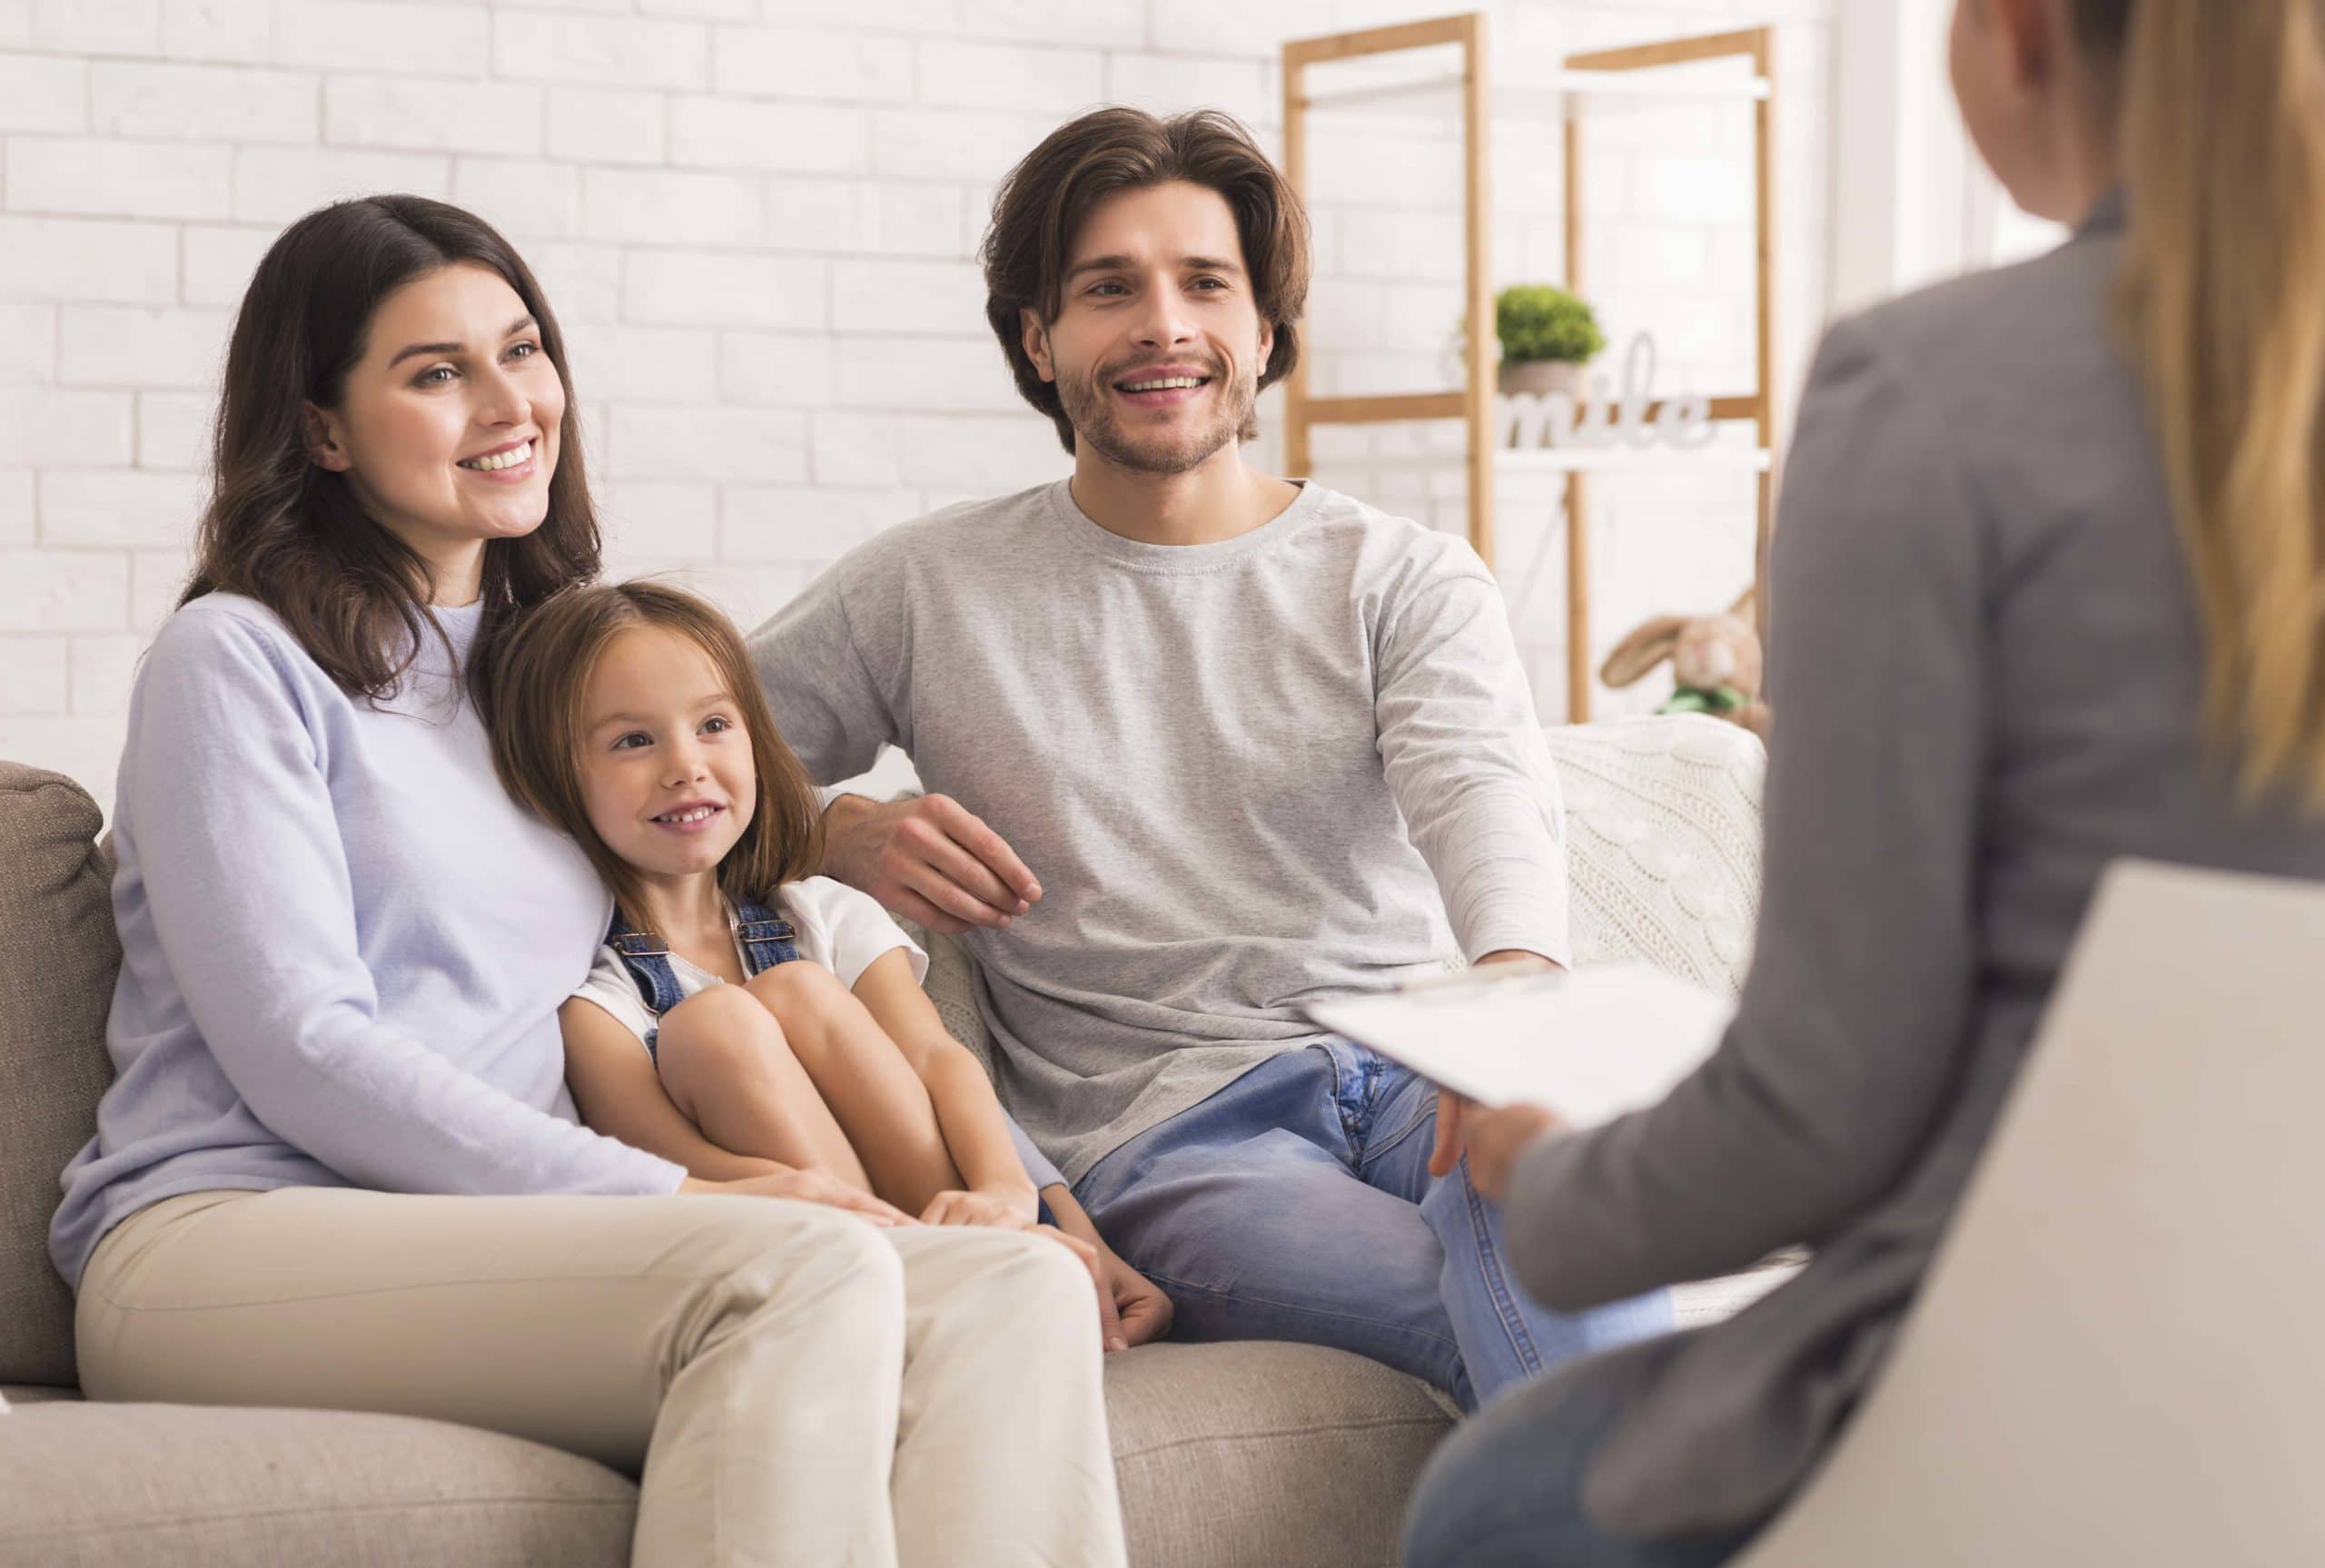 Happy Parents With Little Daughter Sitting Together At Psycholigist's Office After Successful Family Therapy